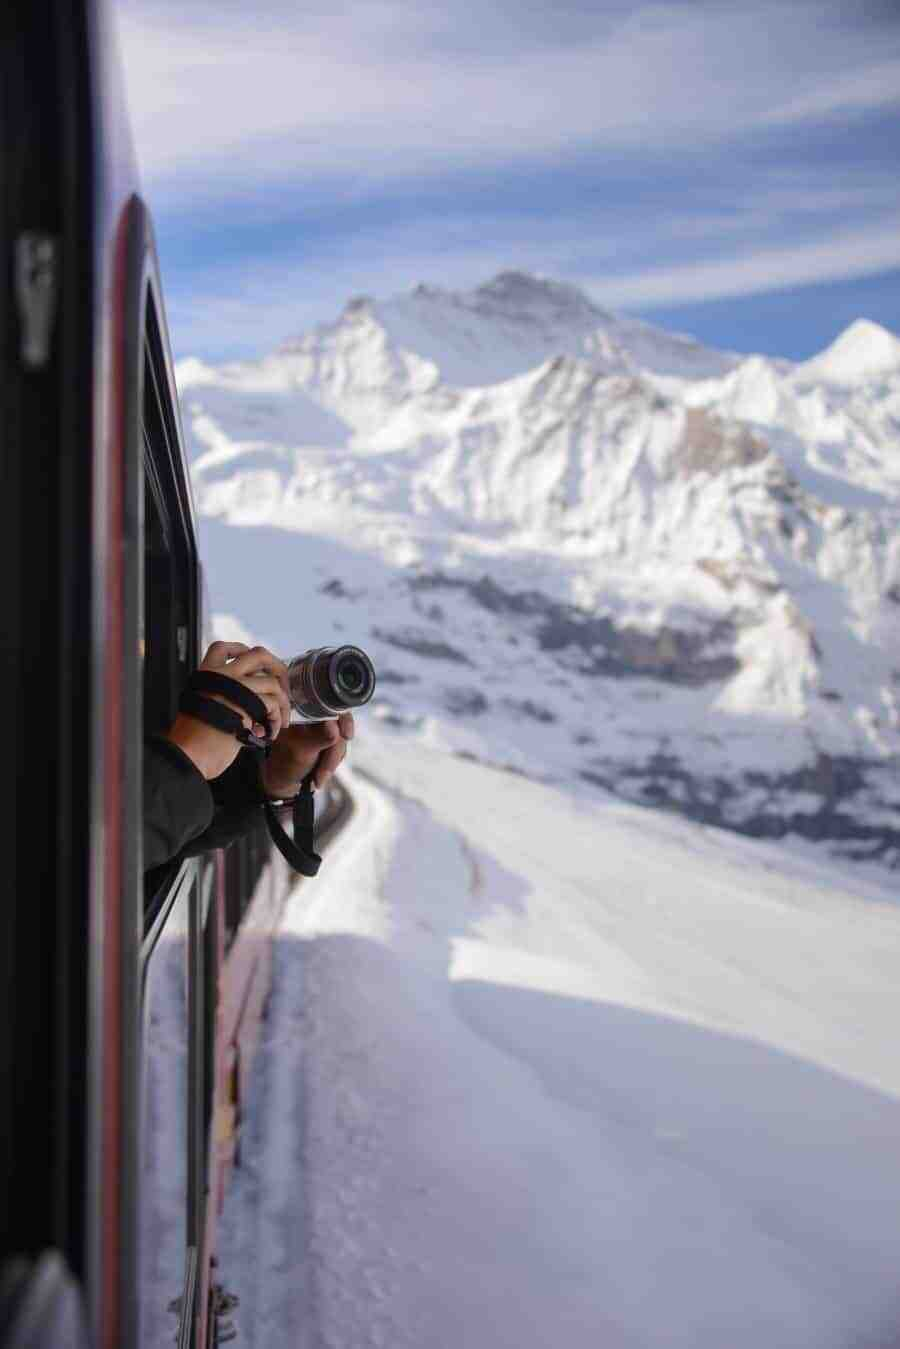 jungfrau-travel-guide-wengen-lauterbrunnen-and-grindelwald-by-the-wandering-lens-33